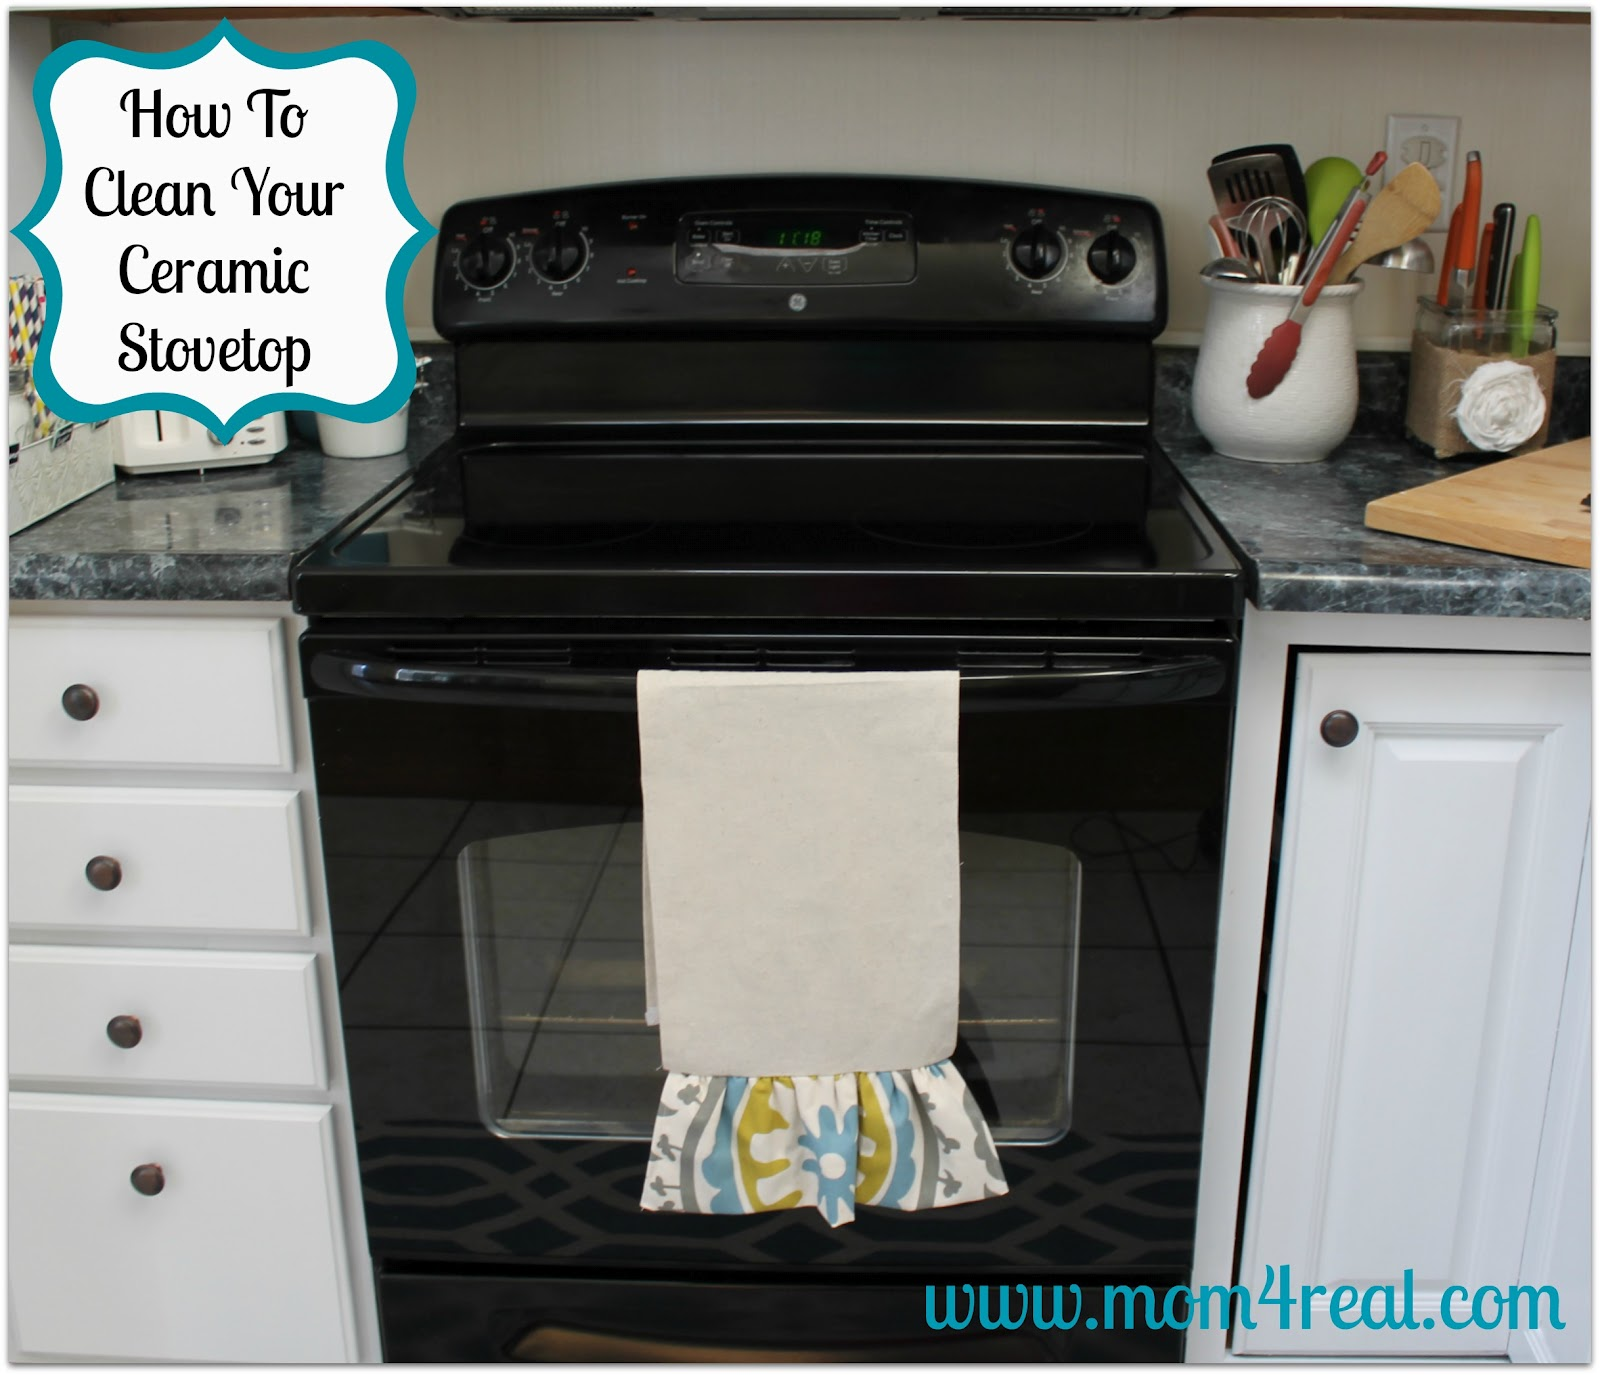 How To Clean Your Ceramic Stovetop Mom 4 Real